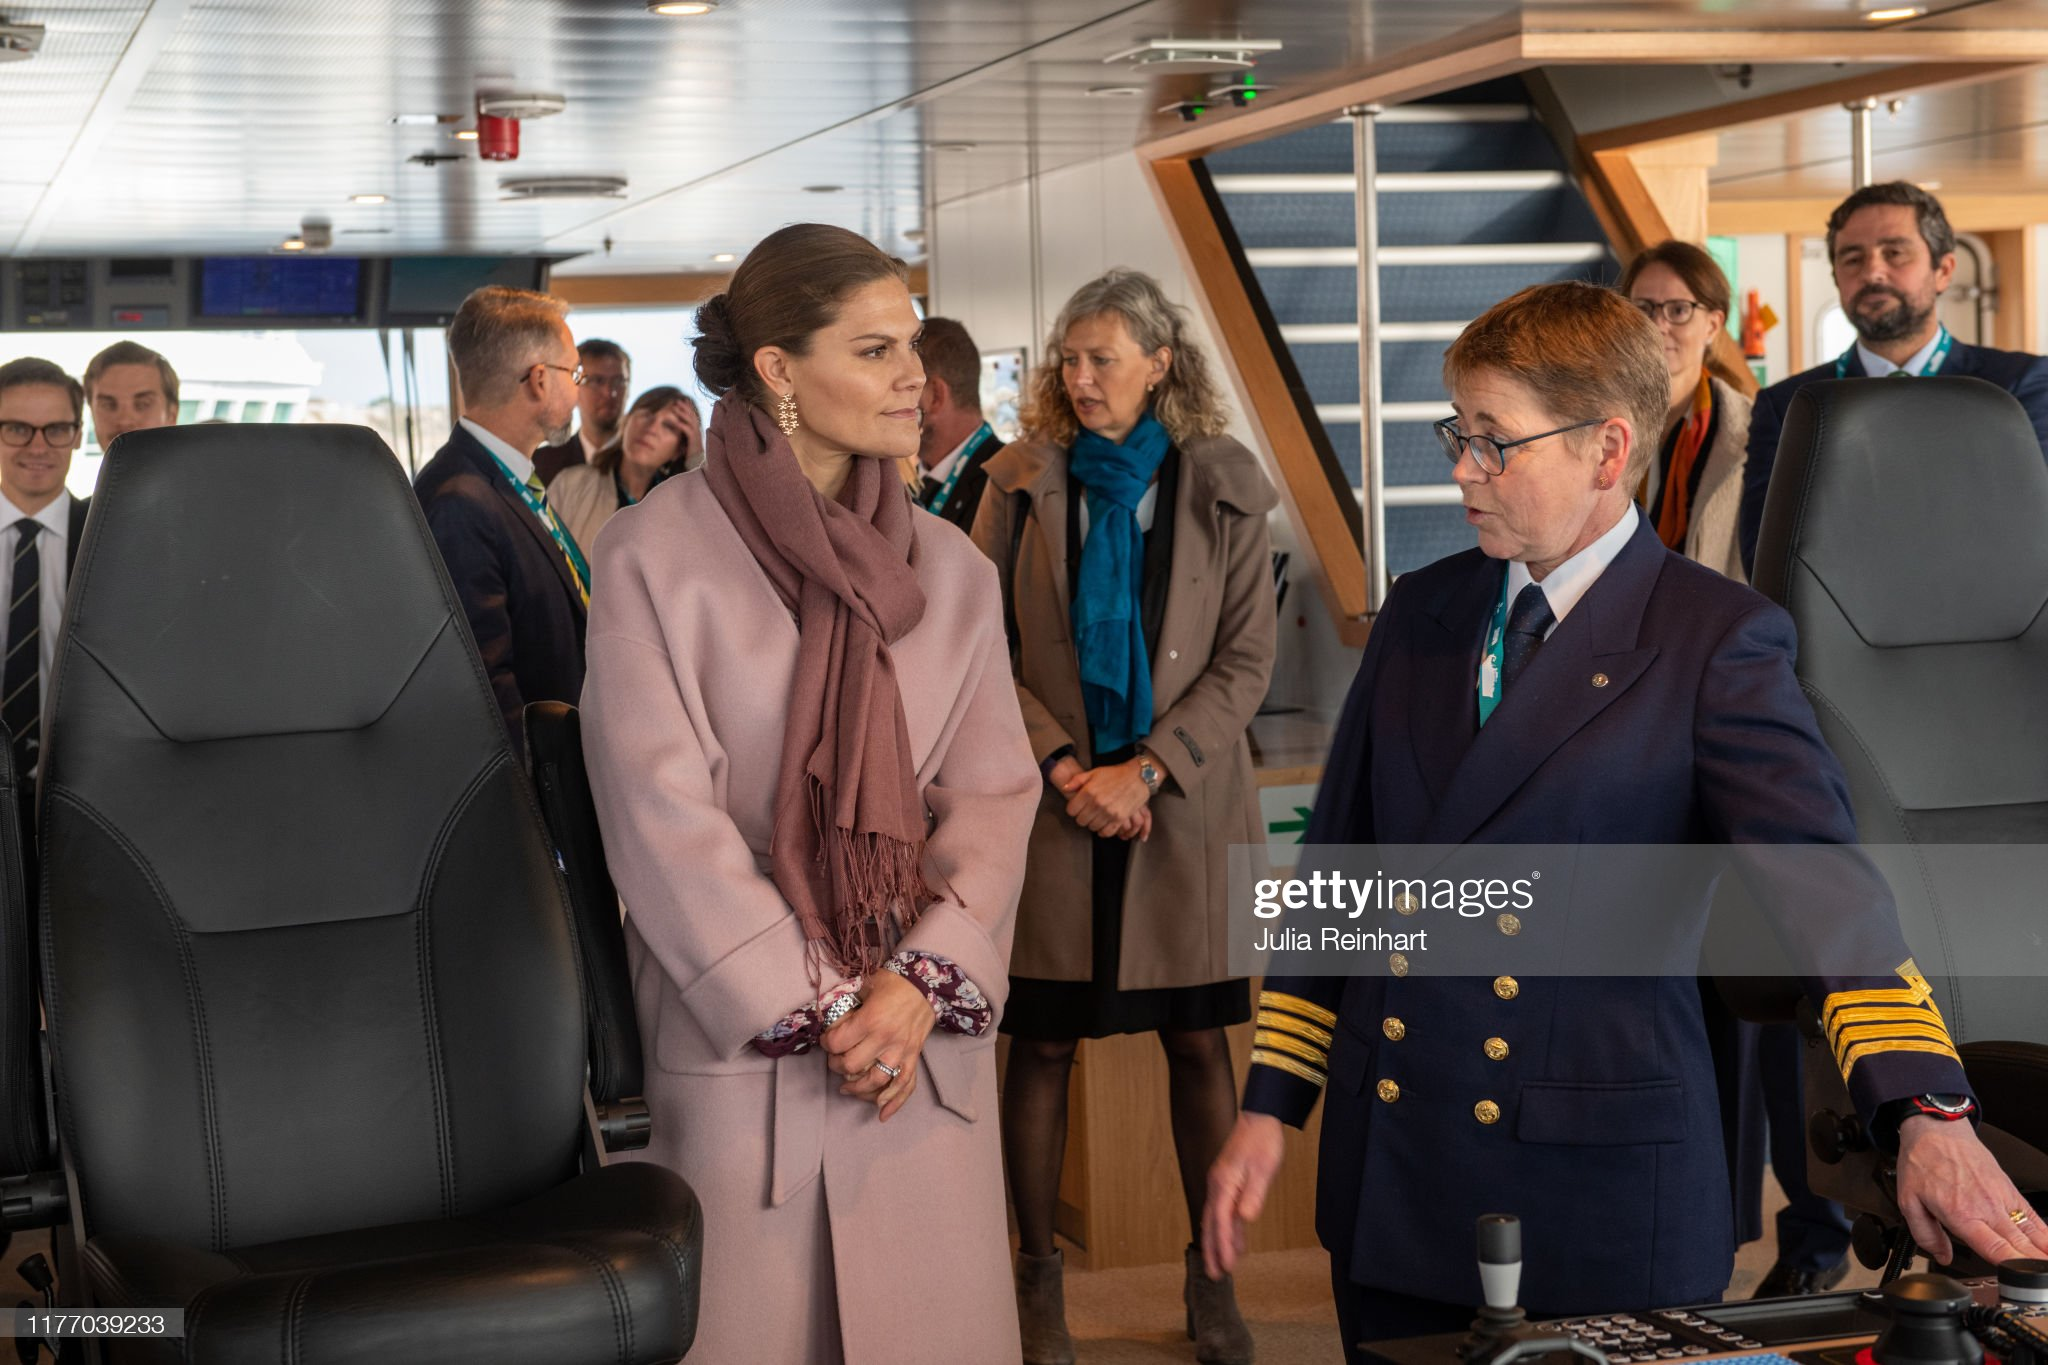 crown-princess-victoria-visits-the-sea-fish-laboratorys-newly-boat-picture-id1177039233